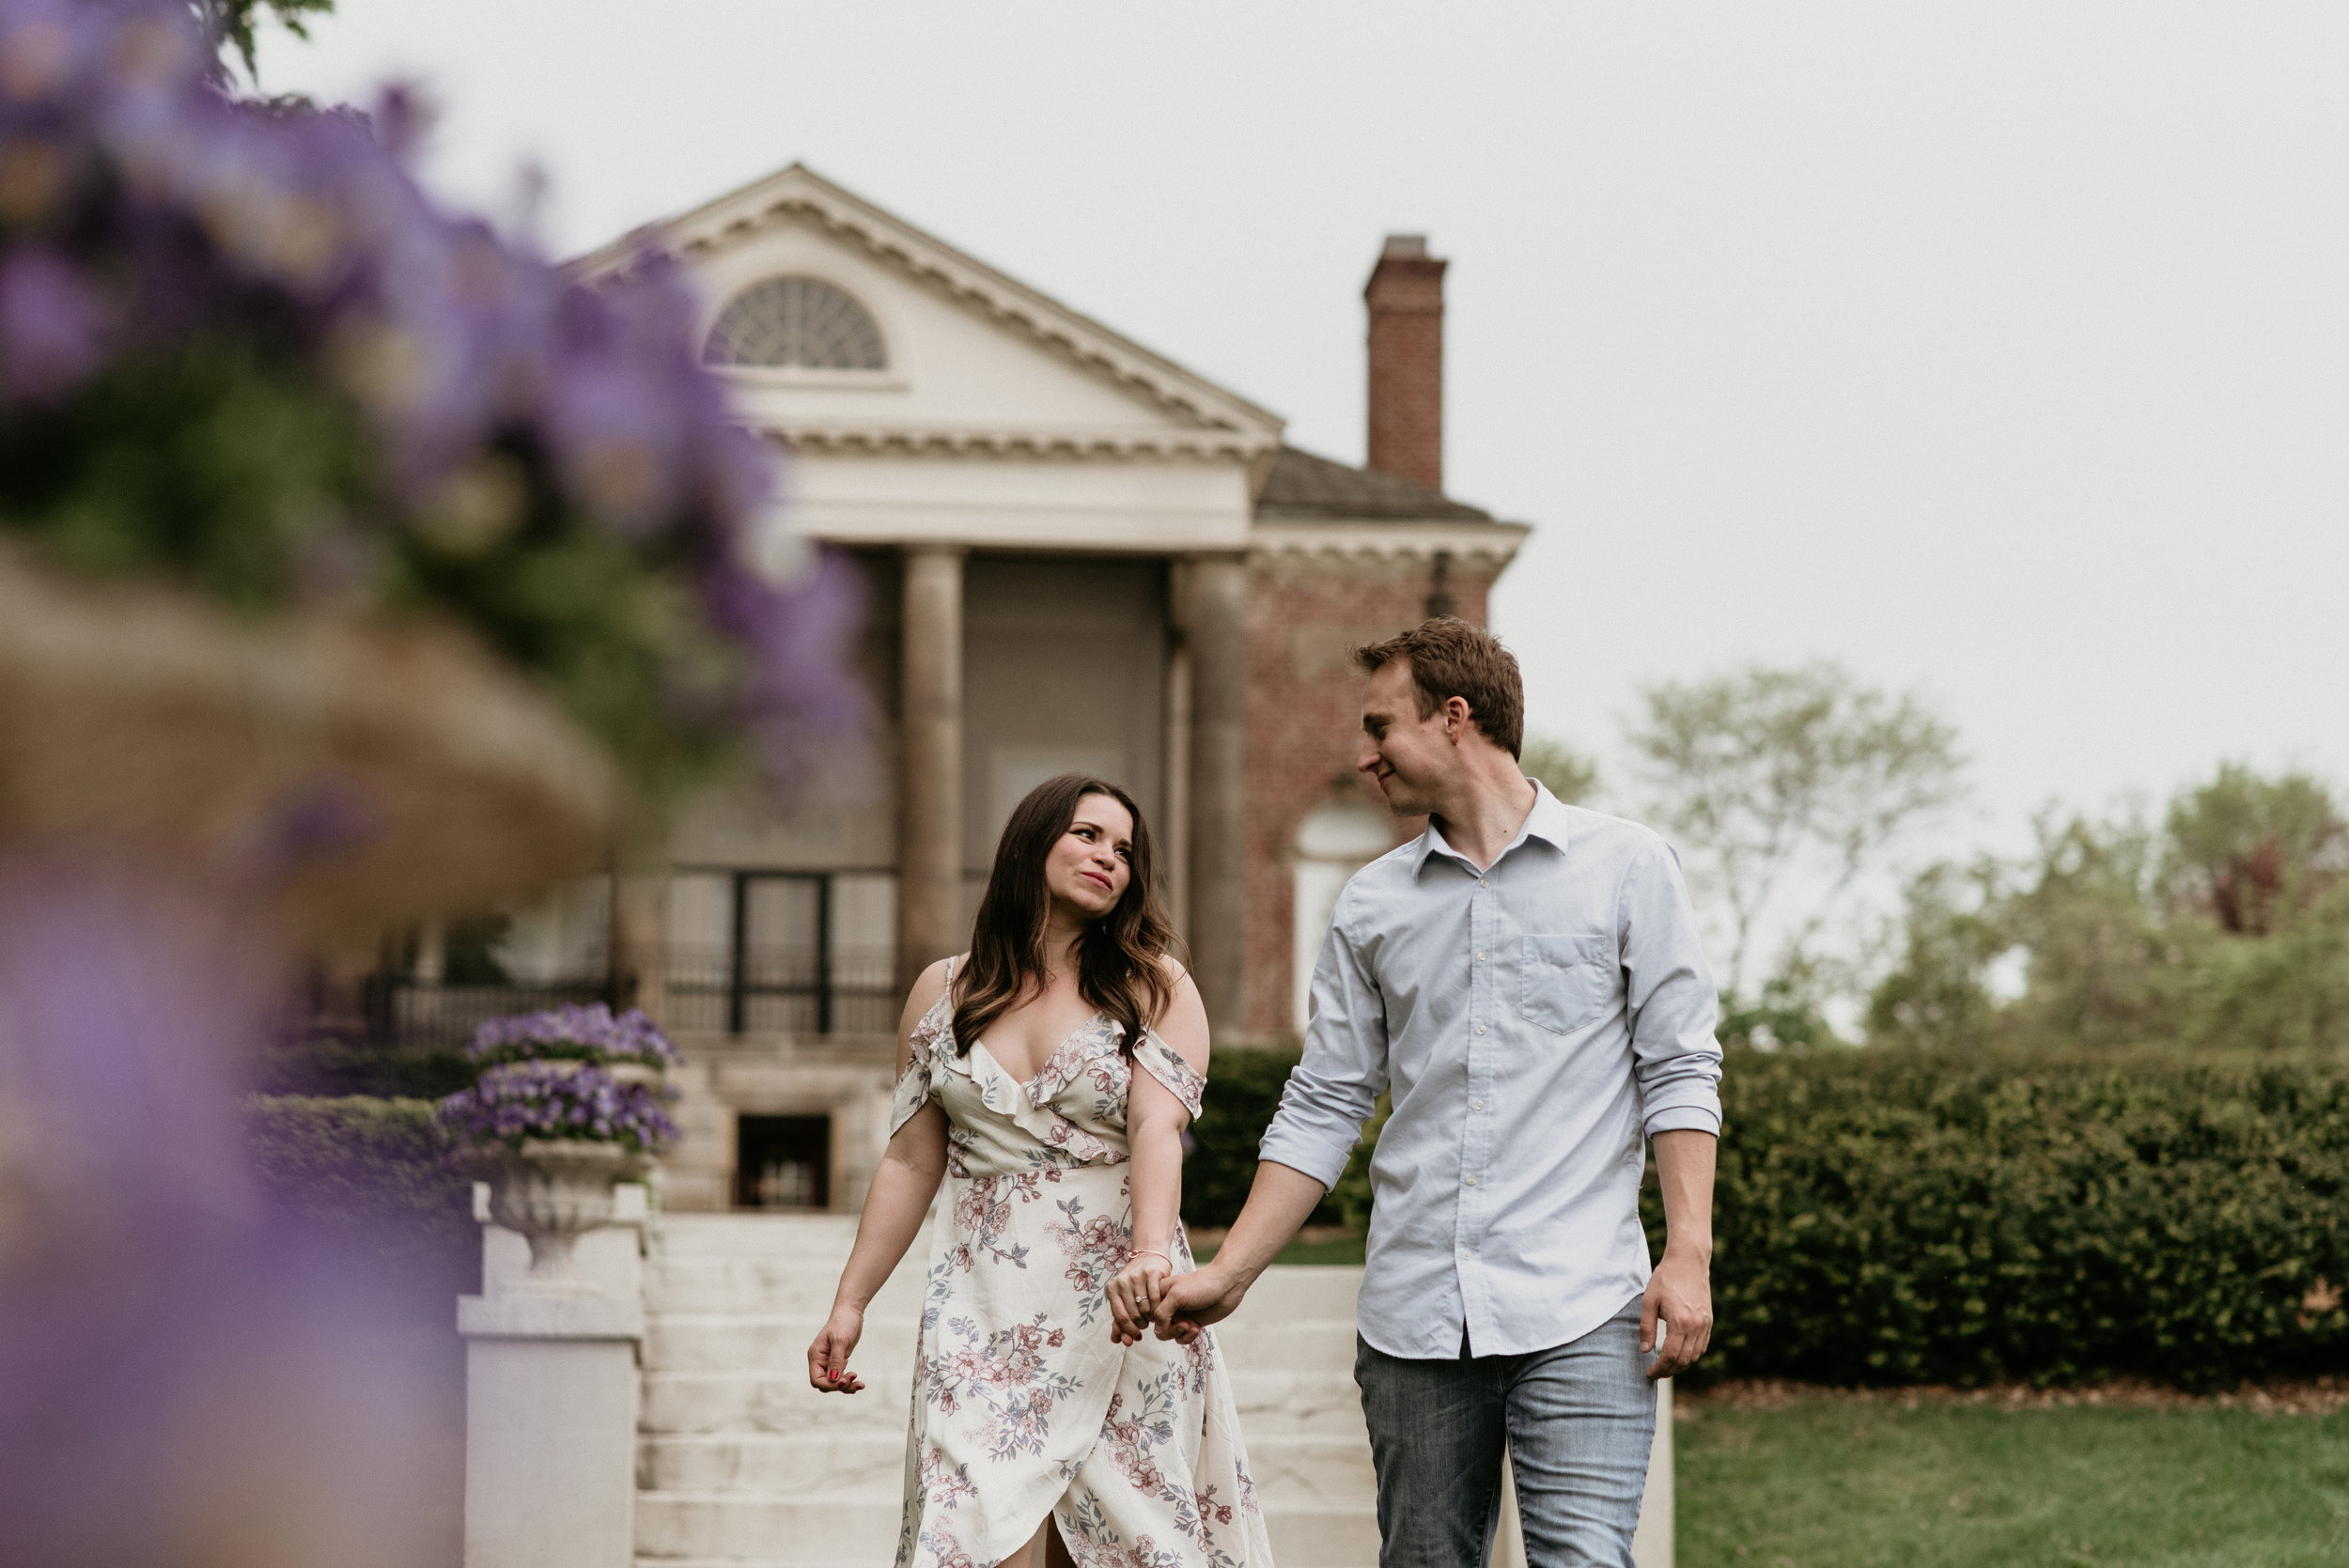 Meagan and Justin - Cantigny Park Engagement | Wheaton, IL